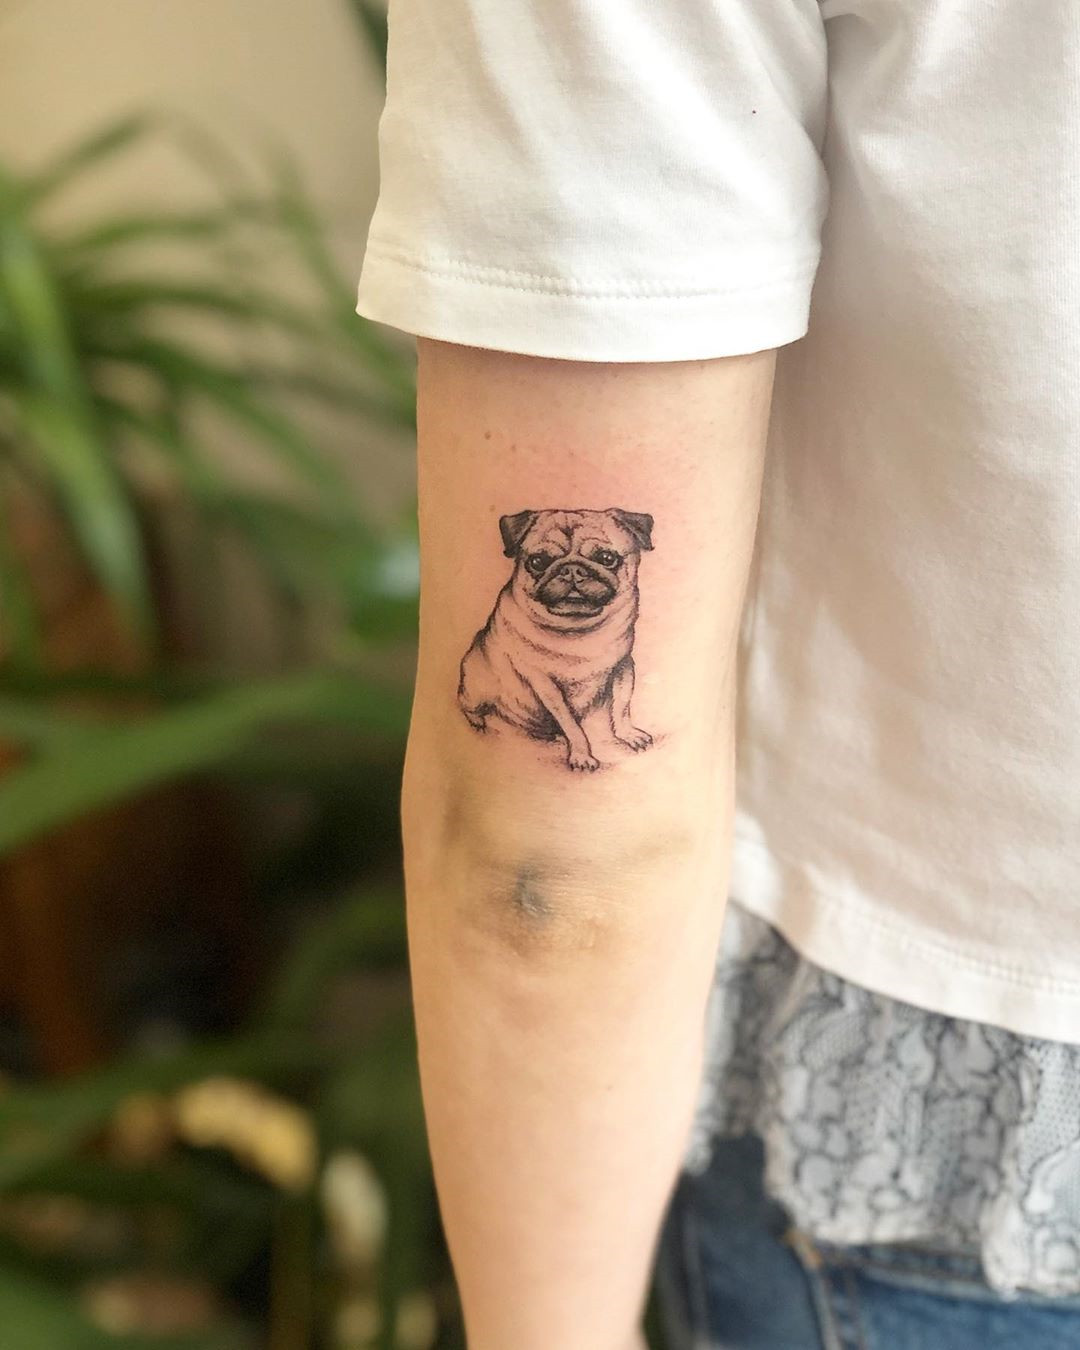 26 Cute Dog Tattoos Ideas For Dog Lovers